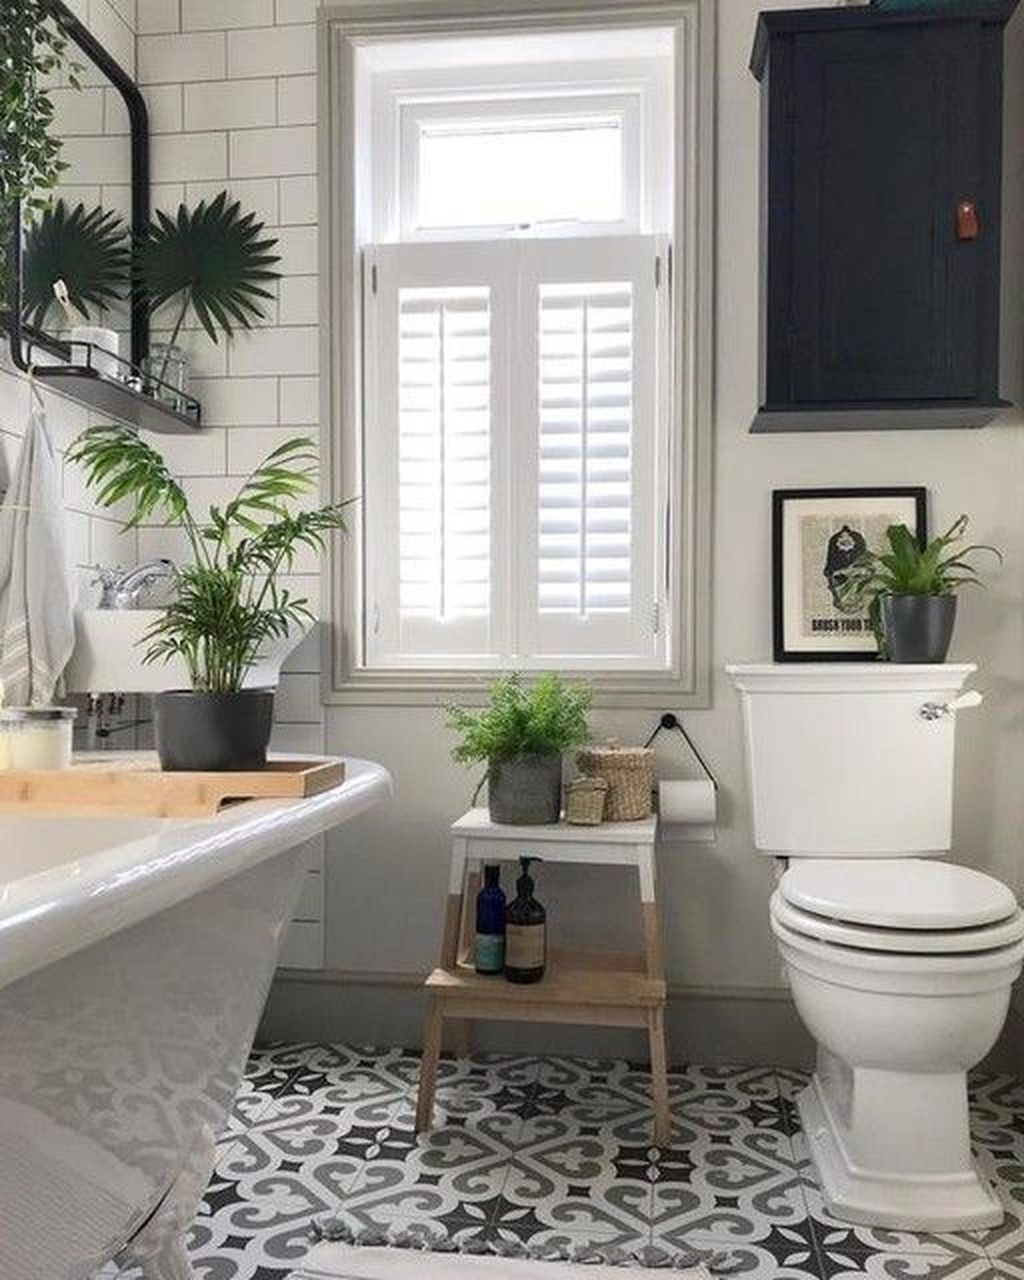 Latest Bathroom Decor Ideas That Match With Your Home Design22